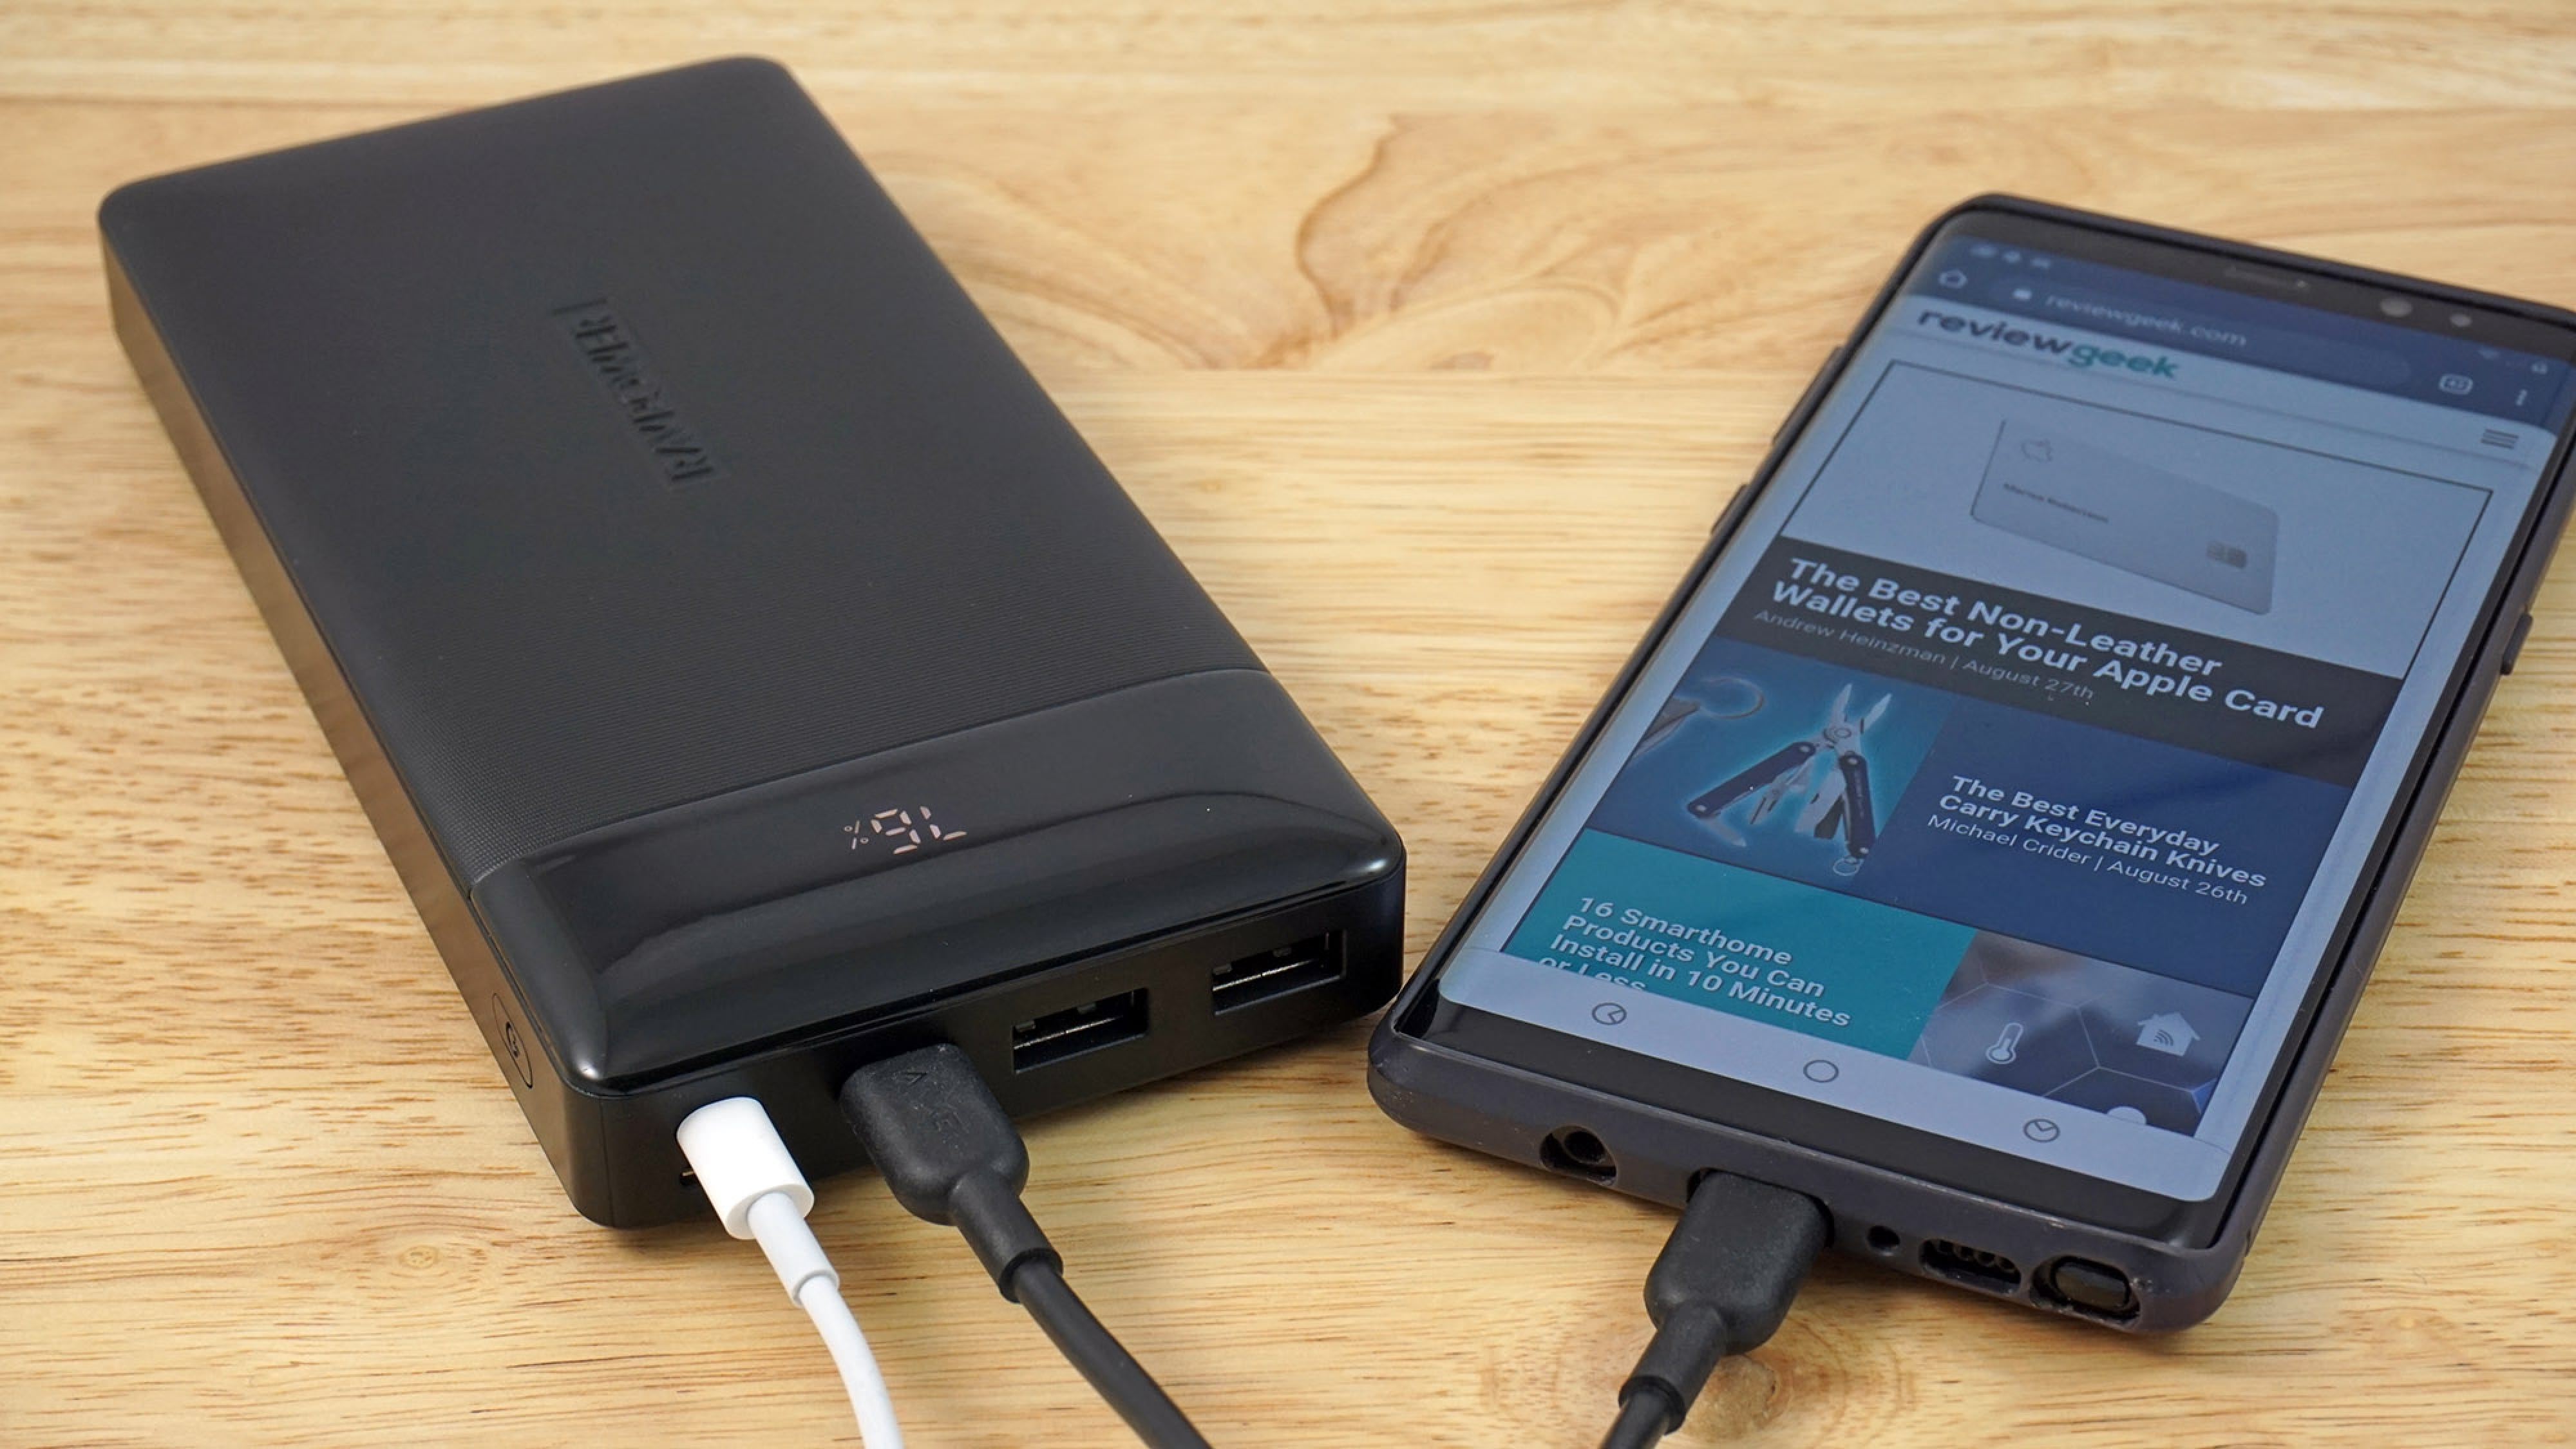 This 20,000 mAh RAVPower Battery Charges Up with Whatever Cable You Want